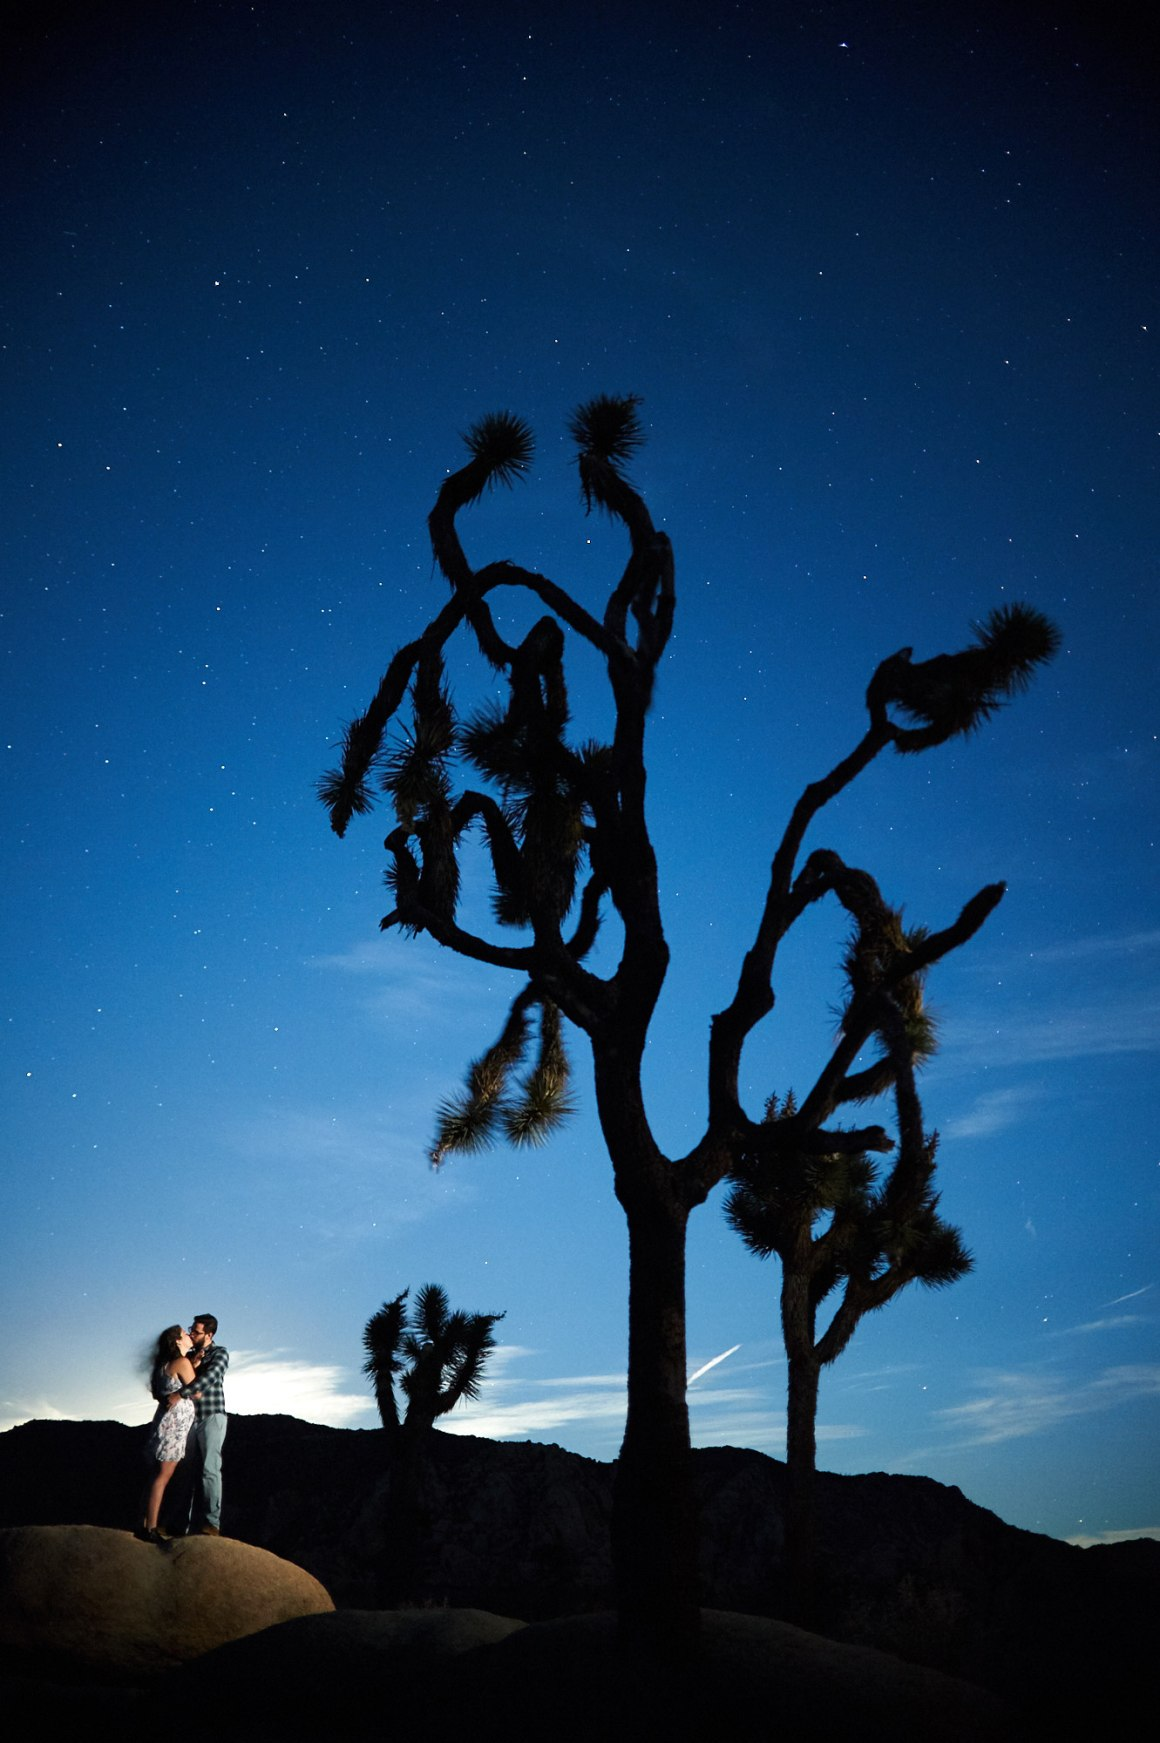 taylor-and-alex-joshua-tree-adventure-engagement-highlights-007